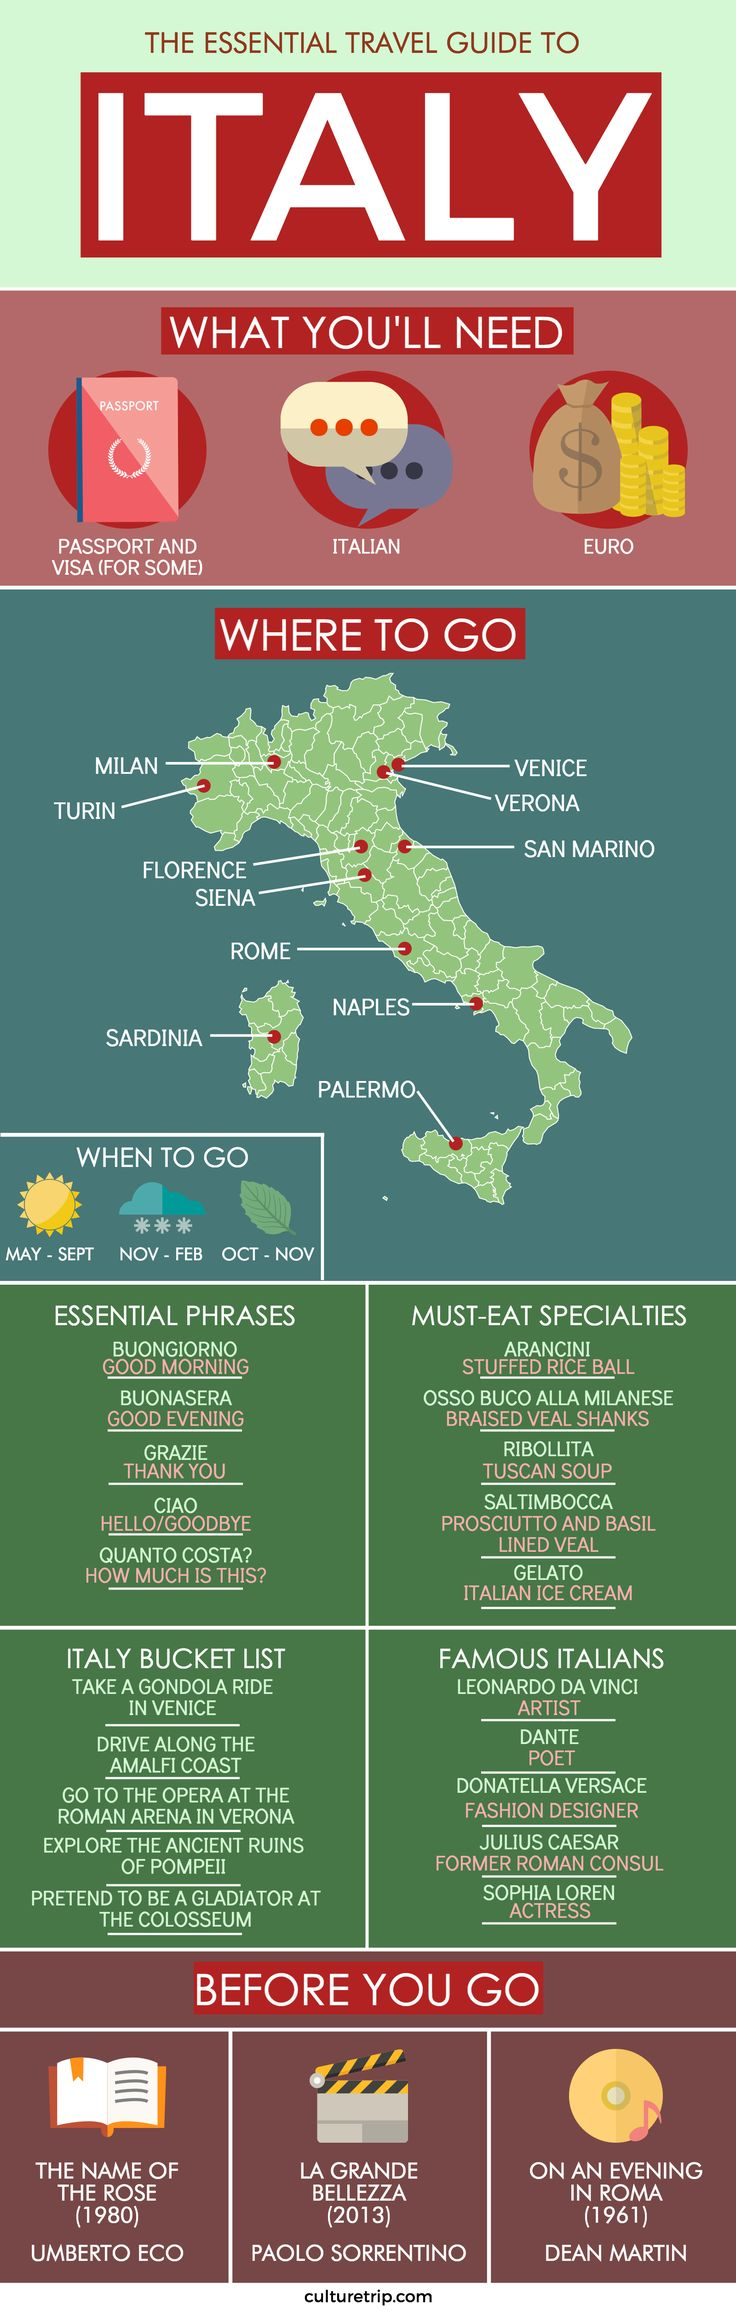 The Essential Travel Guide To Italy (Infographic)